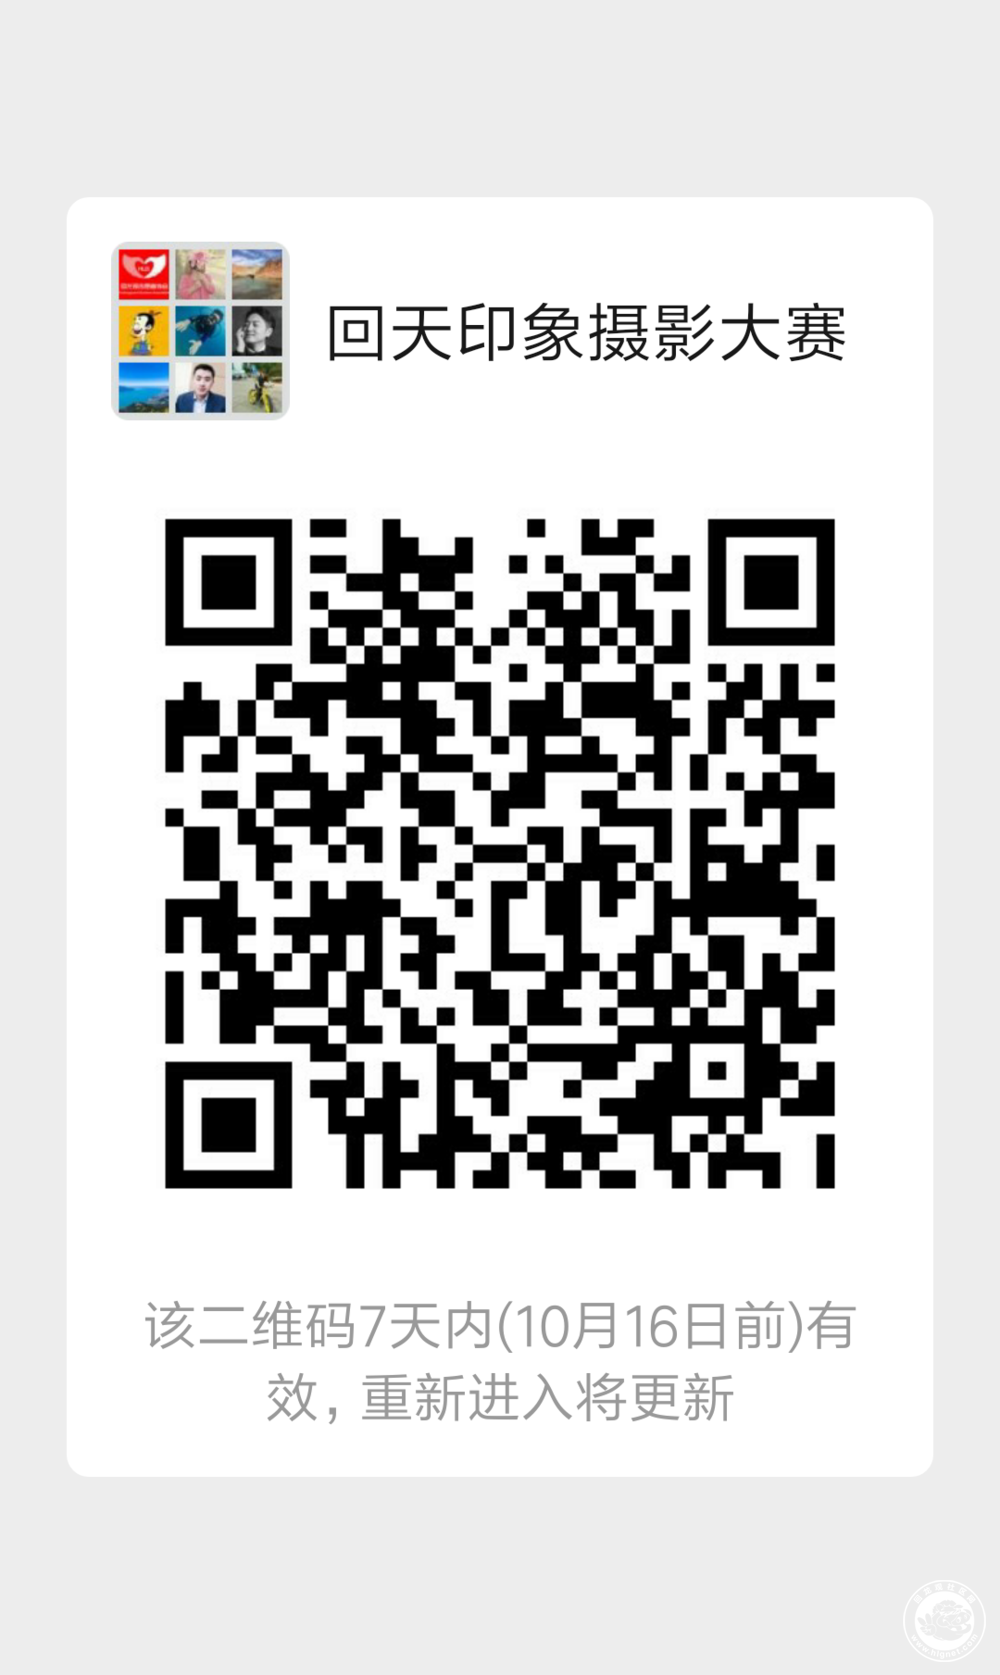 mmqrcode1570599648785.png